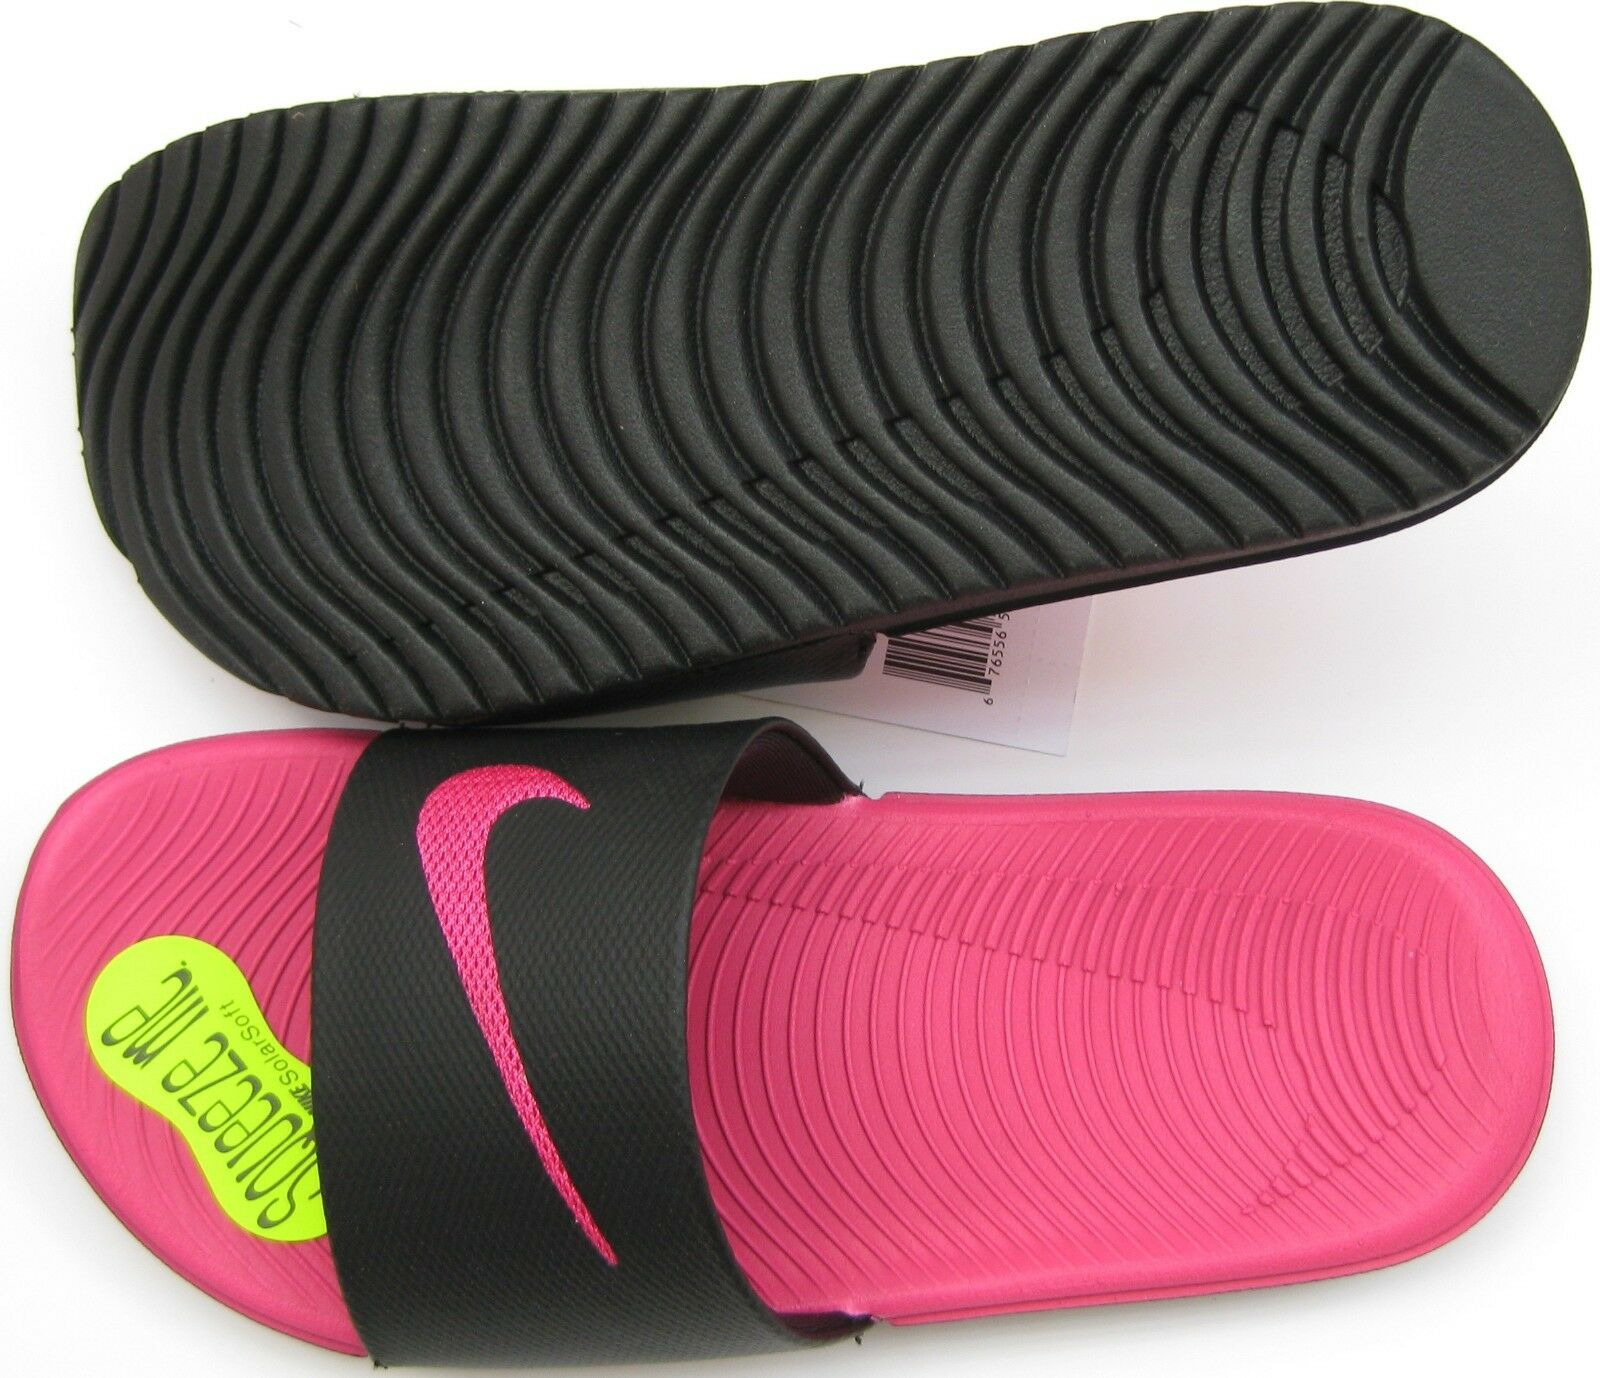 a3146d07537735 Nike Kawa Kid Girls Slide Sandals Black Pink Size 1y